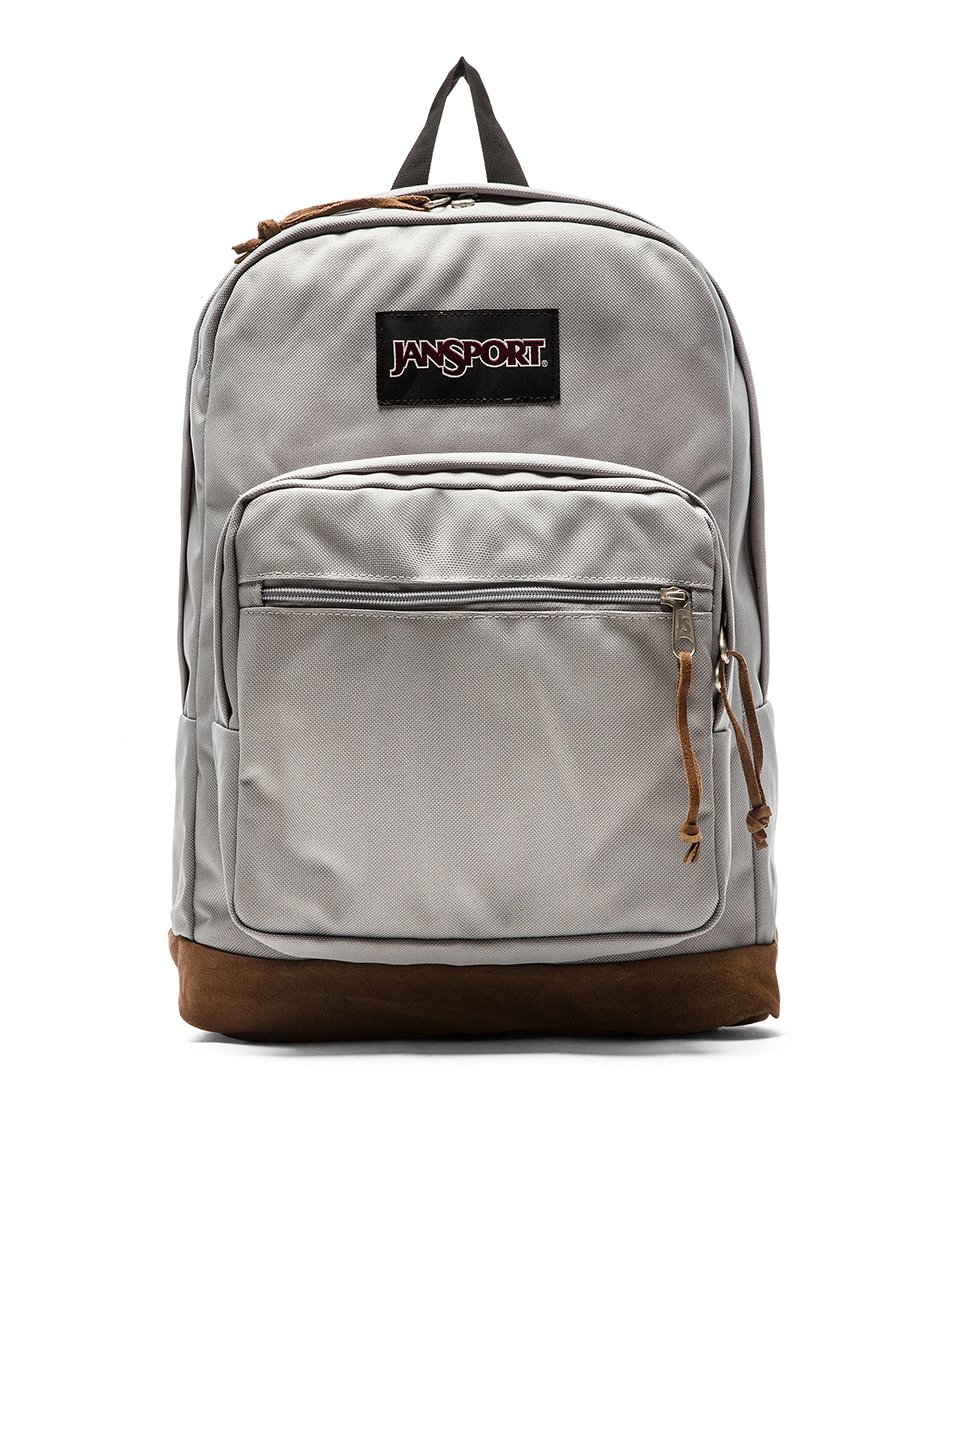 Jansport Right Pack in Grey Rabbit